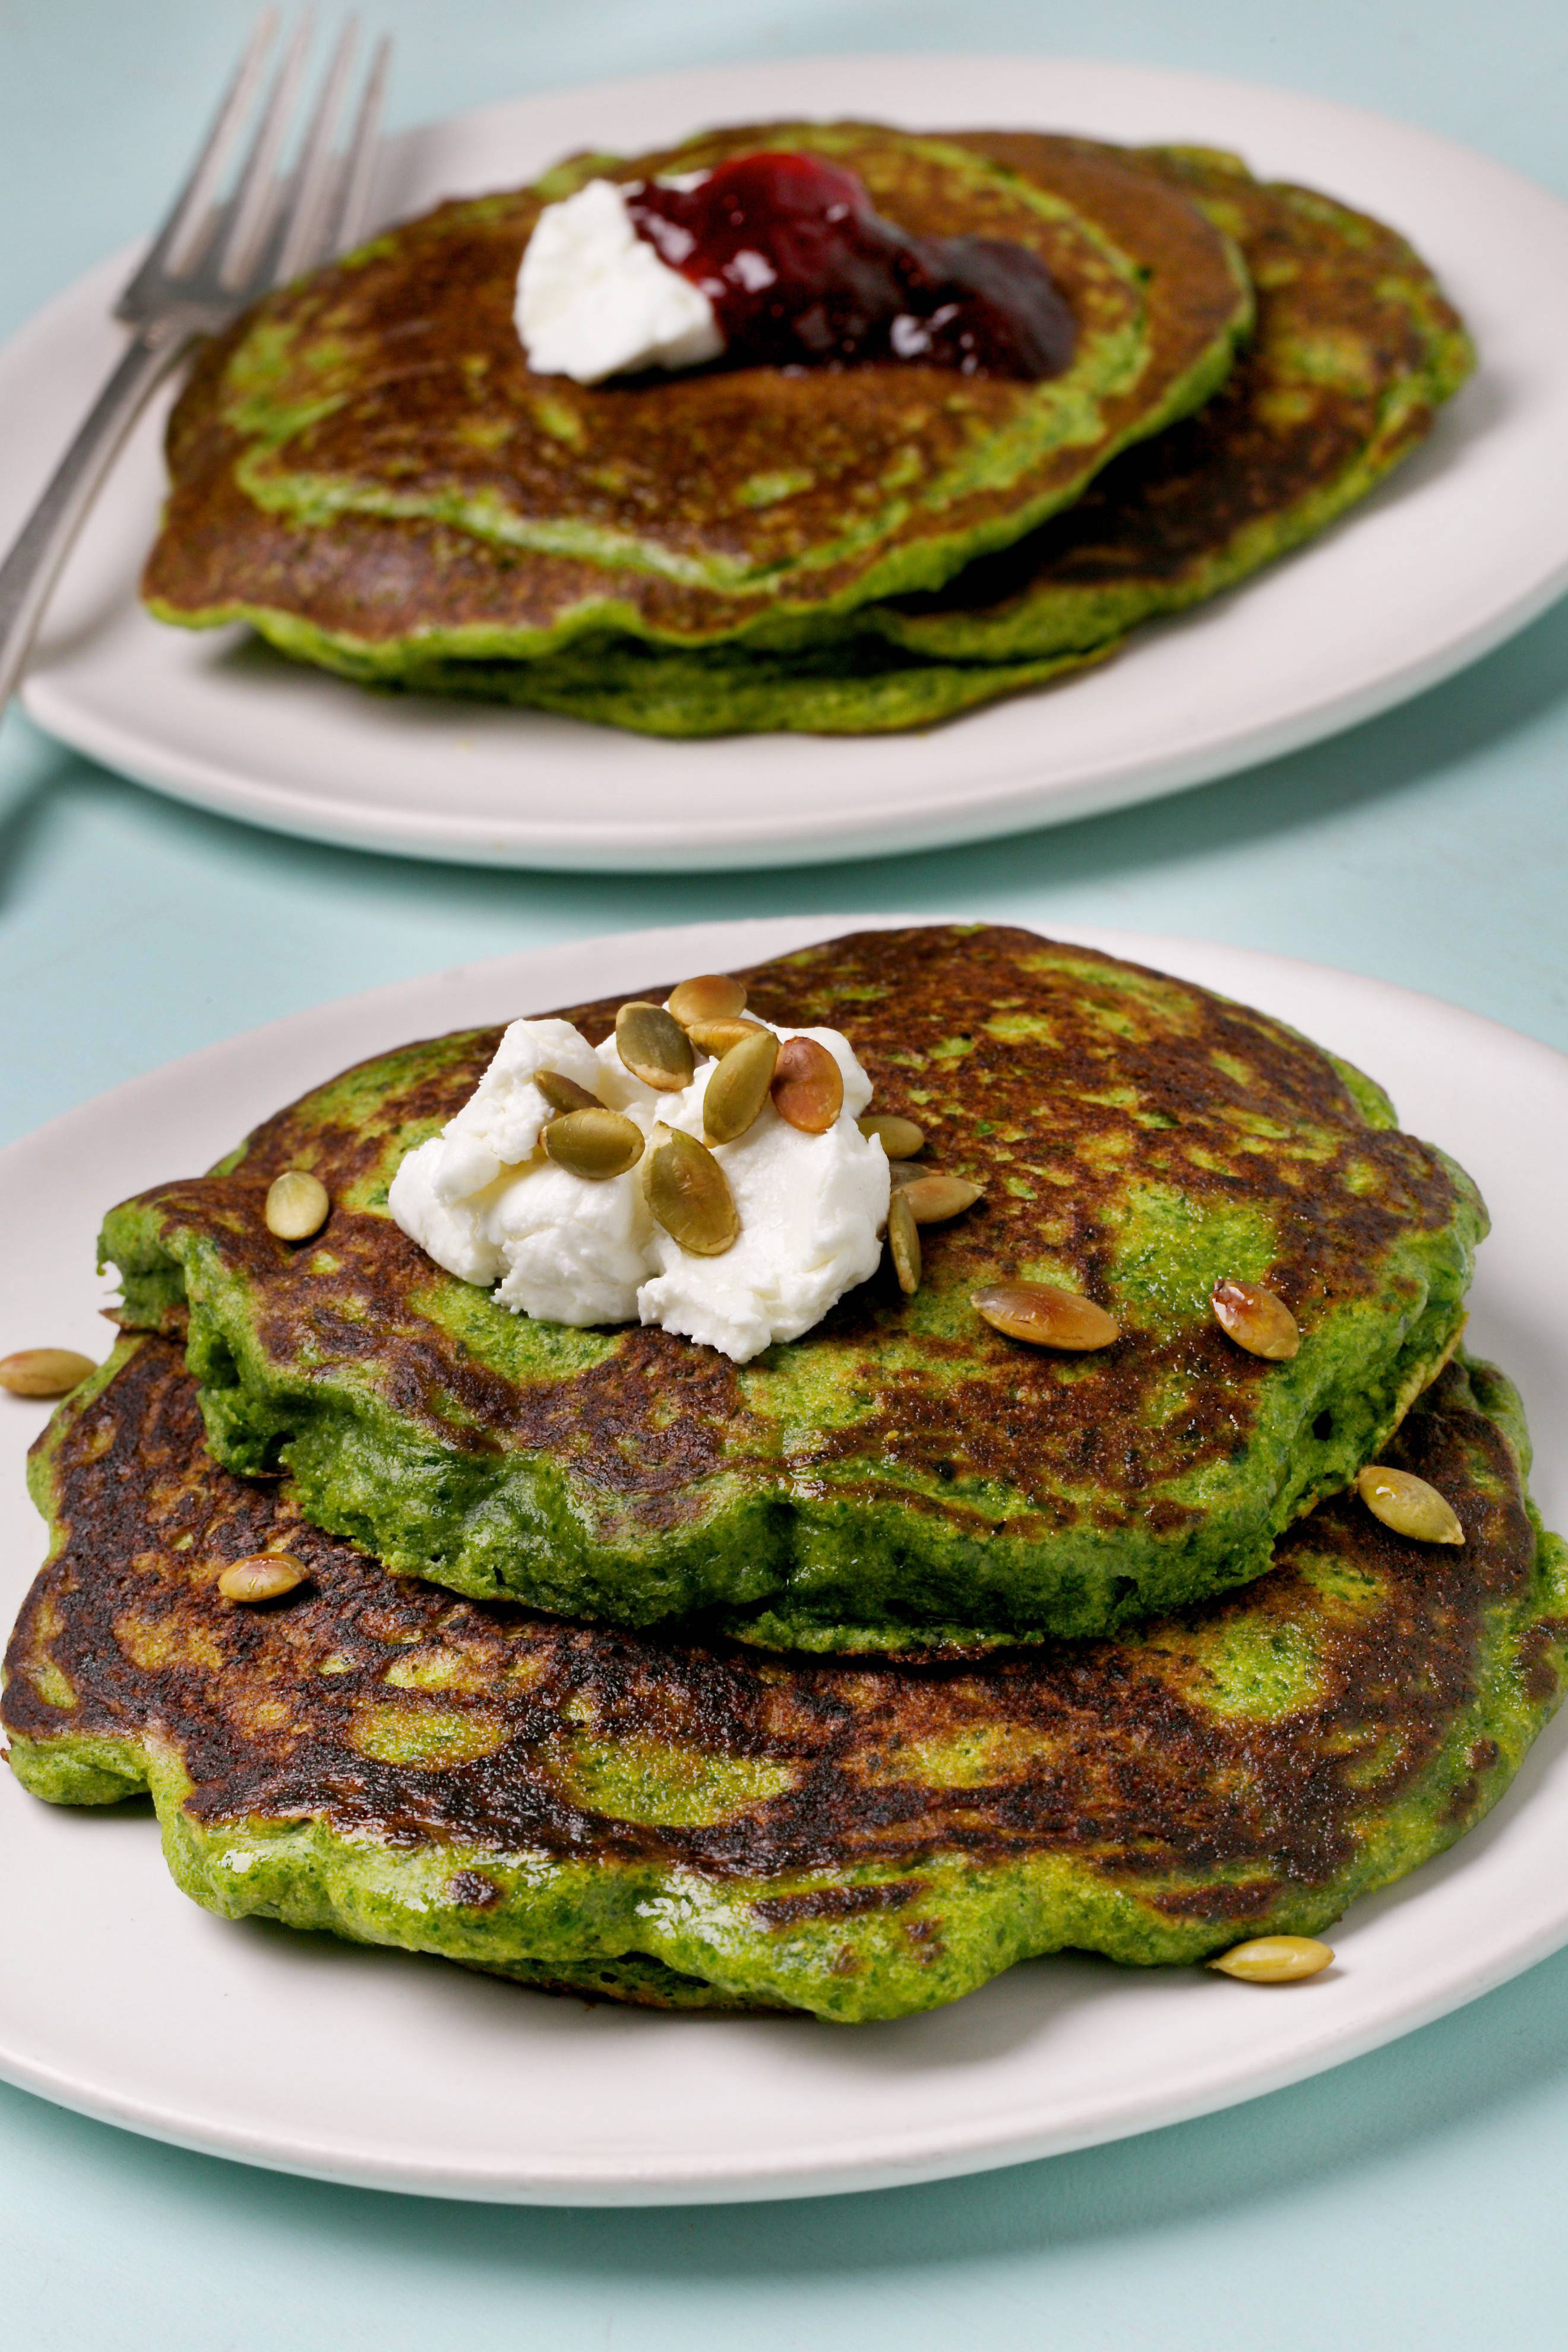 In defense of spinach pancakes: A recipe worth loving, unless you're an Internet troll